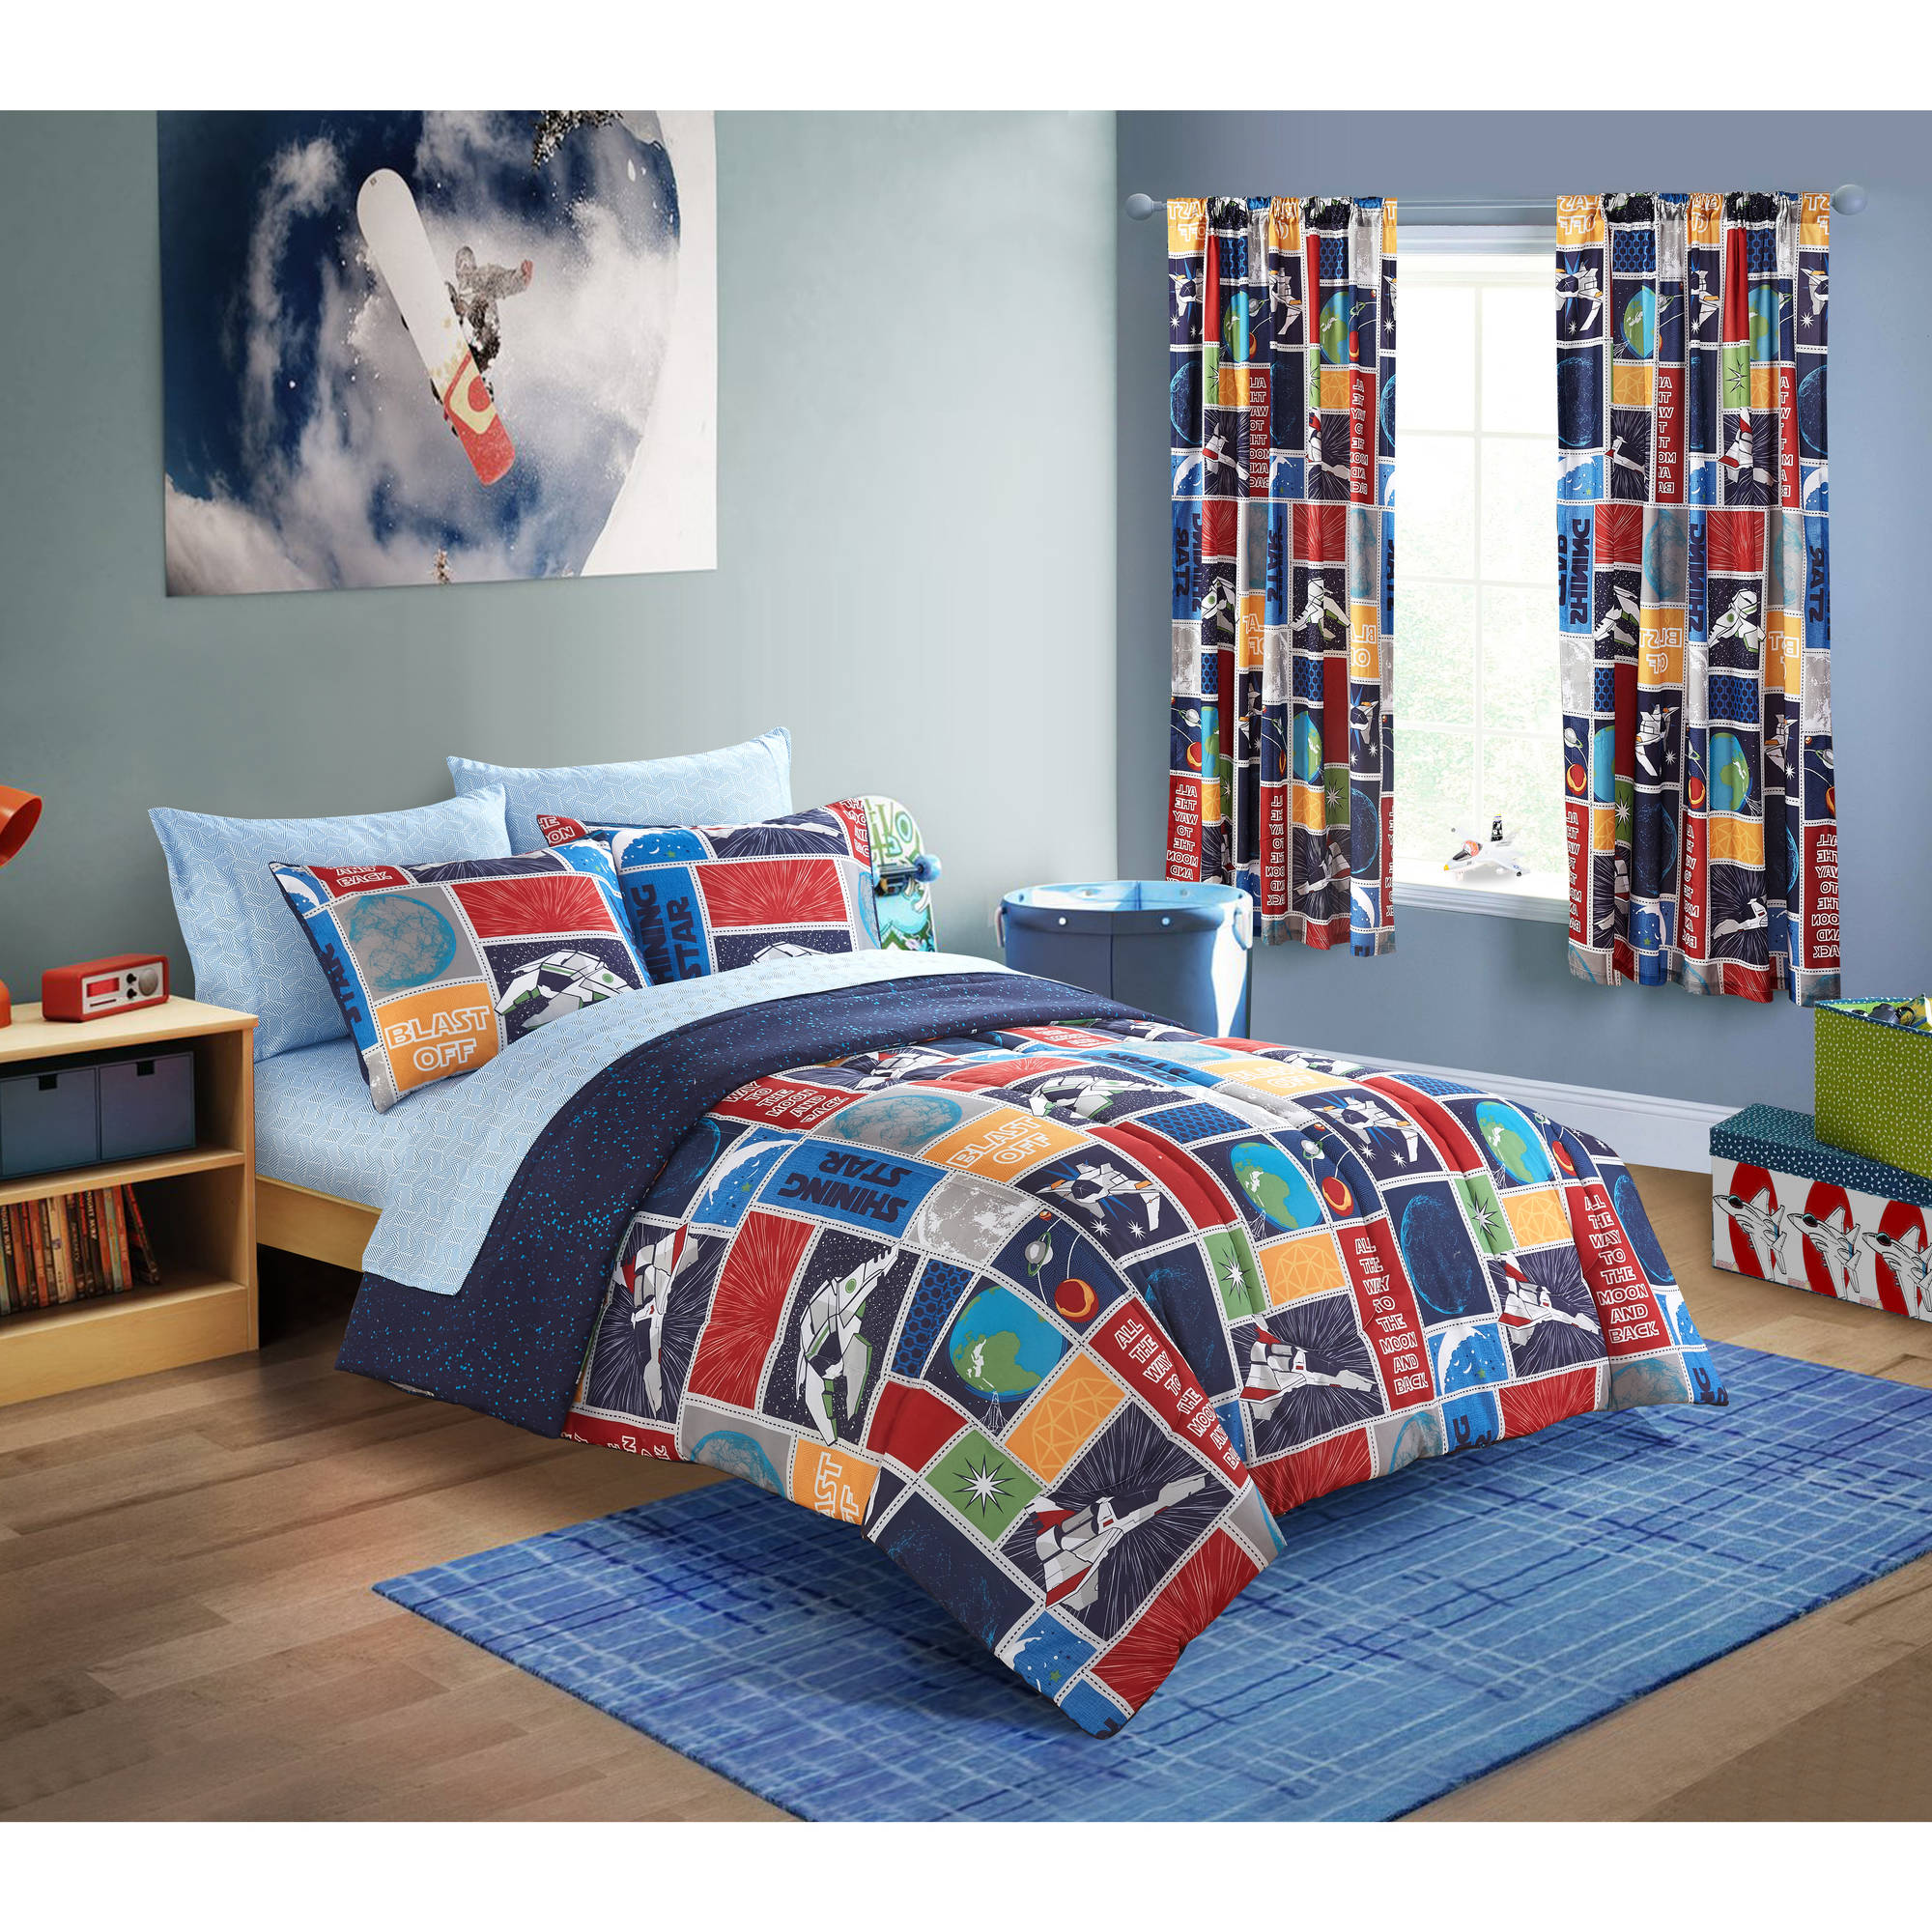 Mainstays Kids Outerspace Stars Bed-In-A-Bag Bedding Set